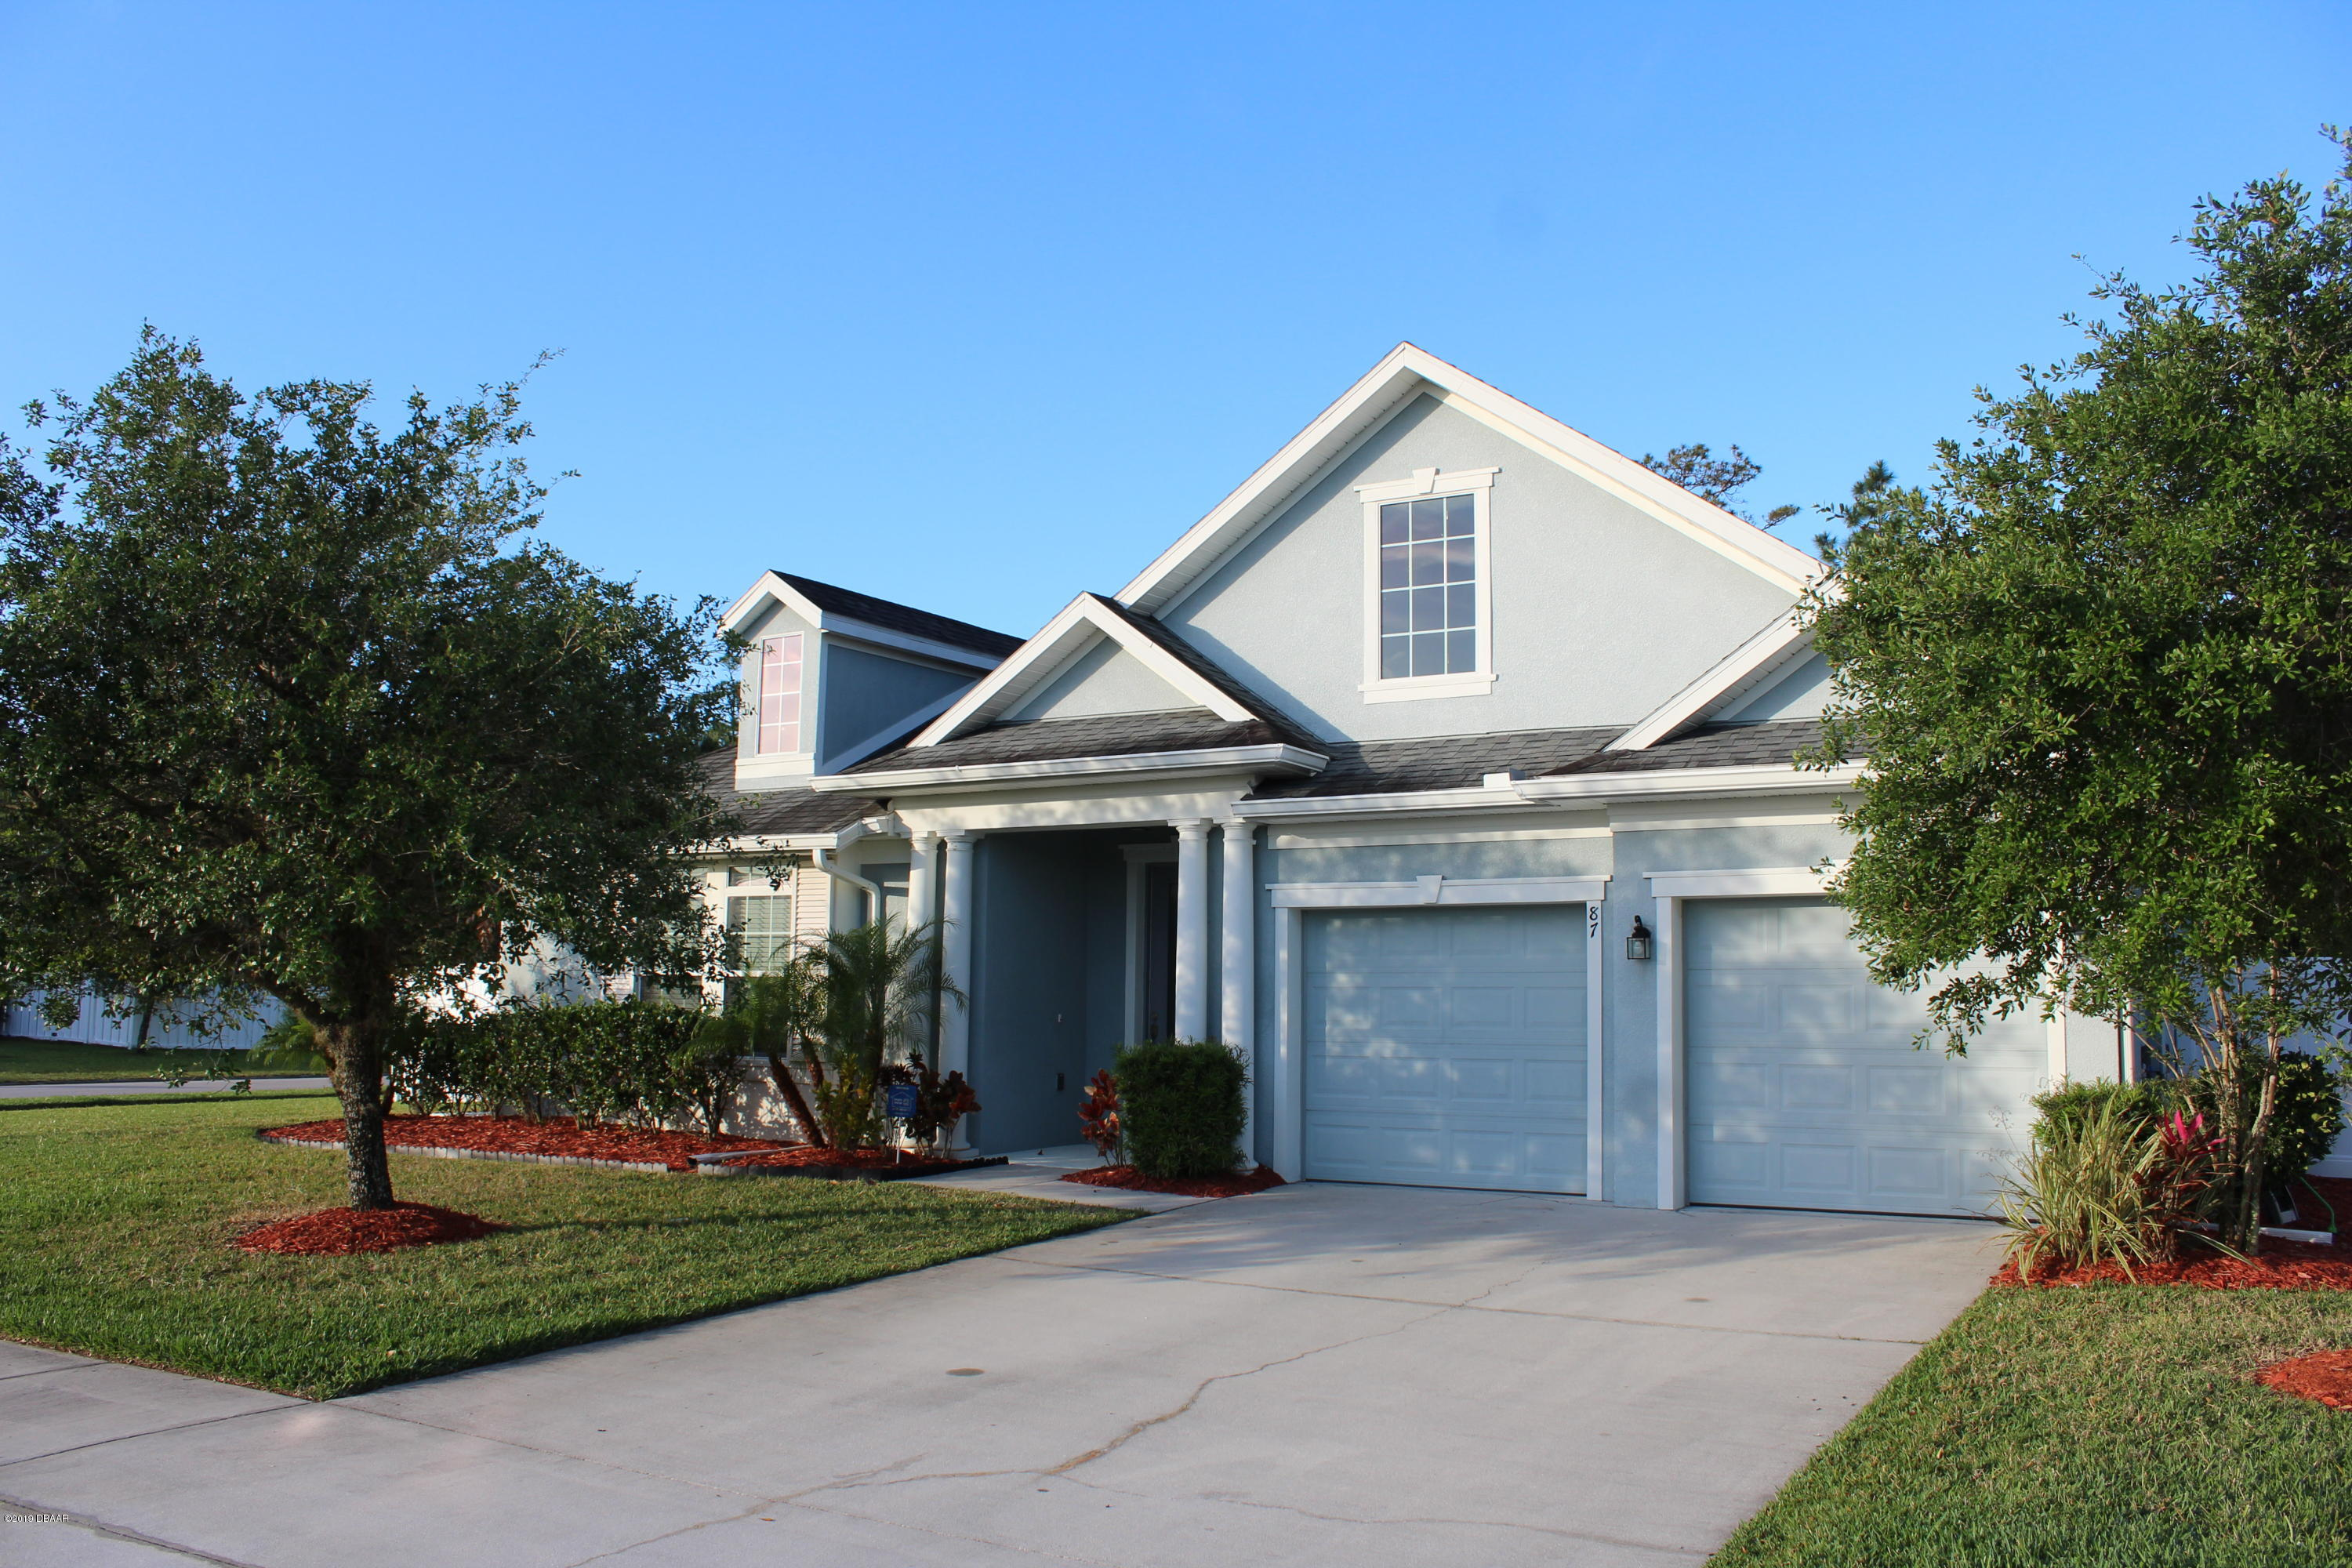 87  Abacus Avenue, Ormond Beach in Volusia County, FL 32174 Home for Sale